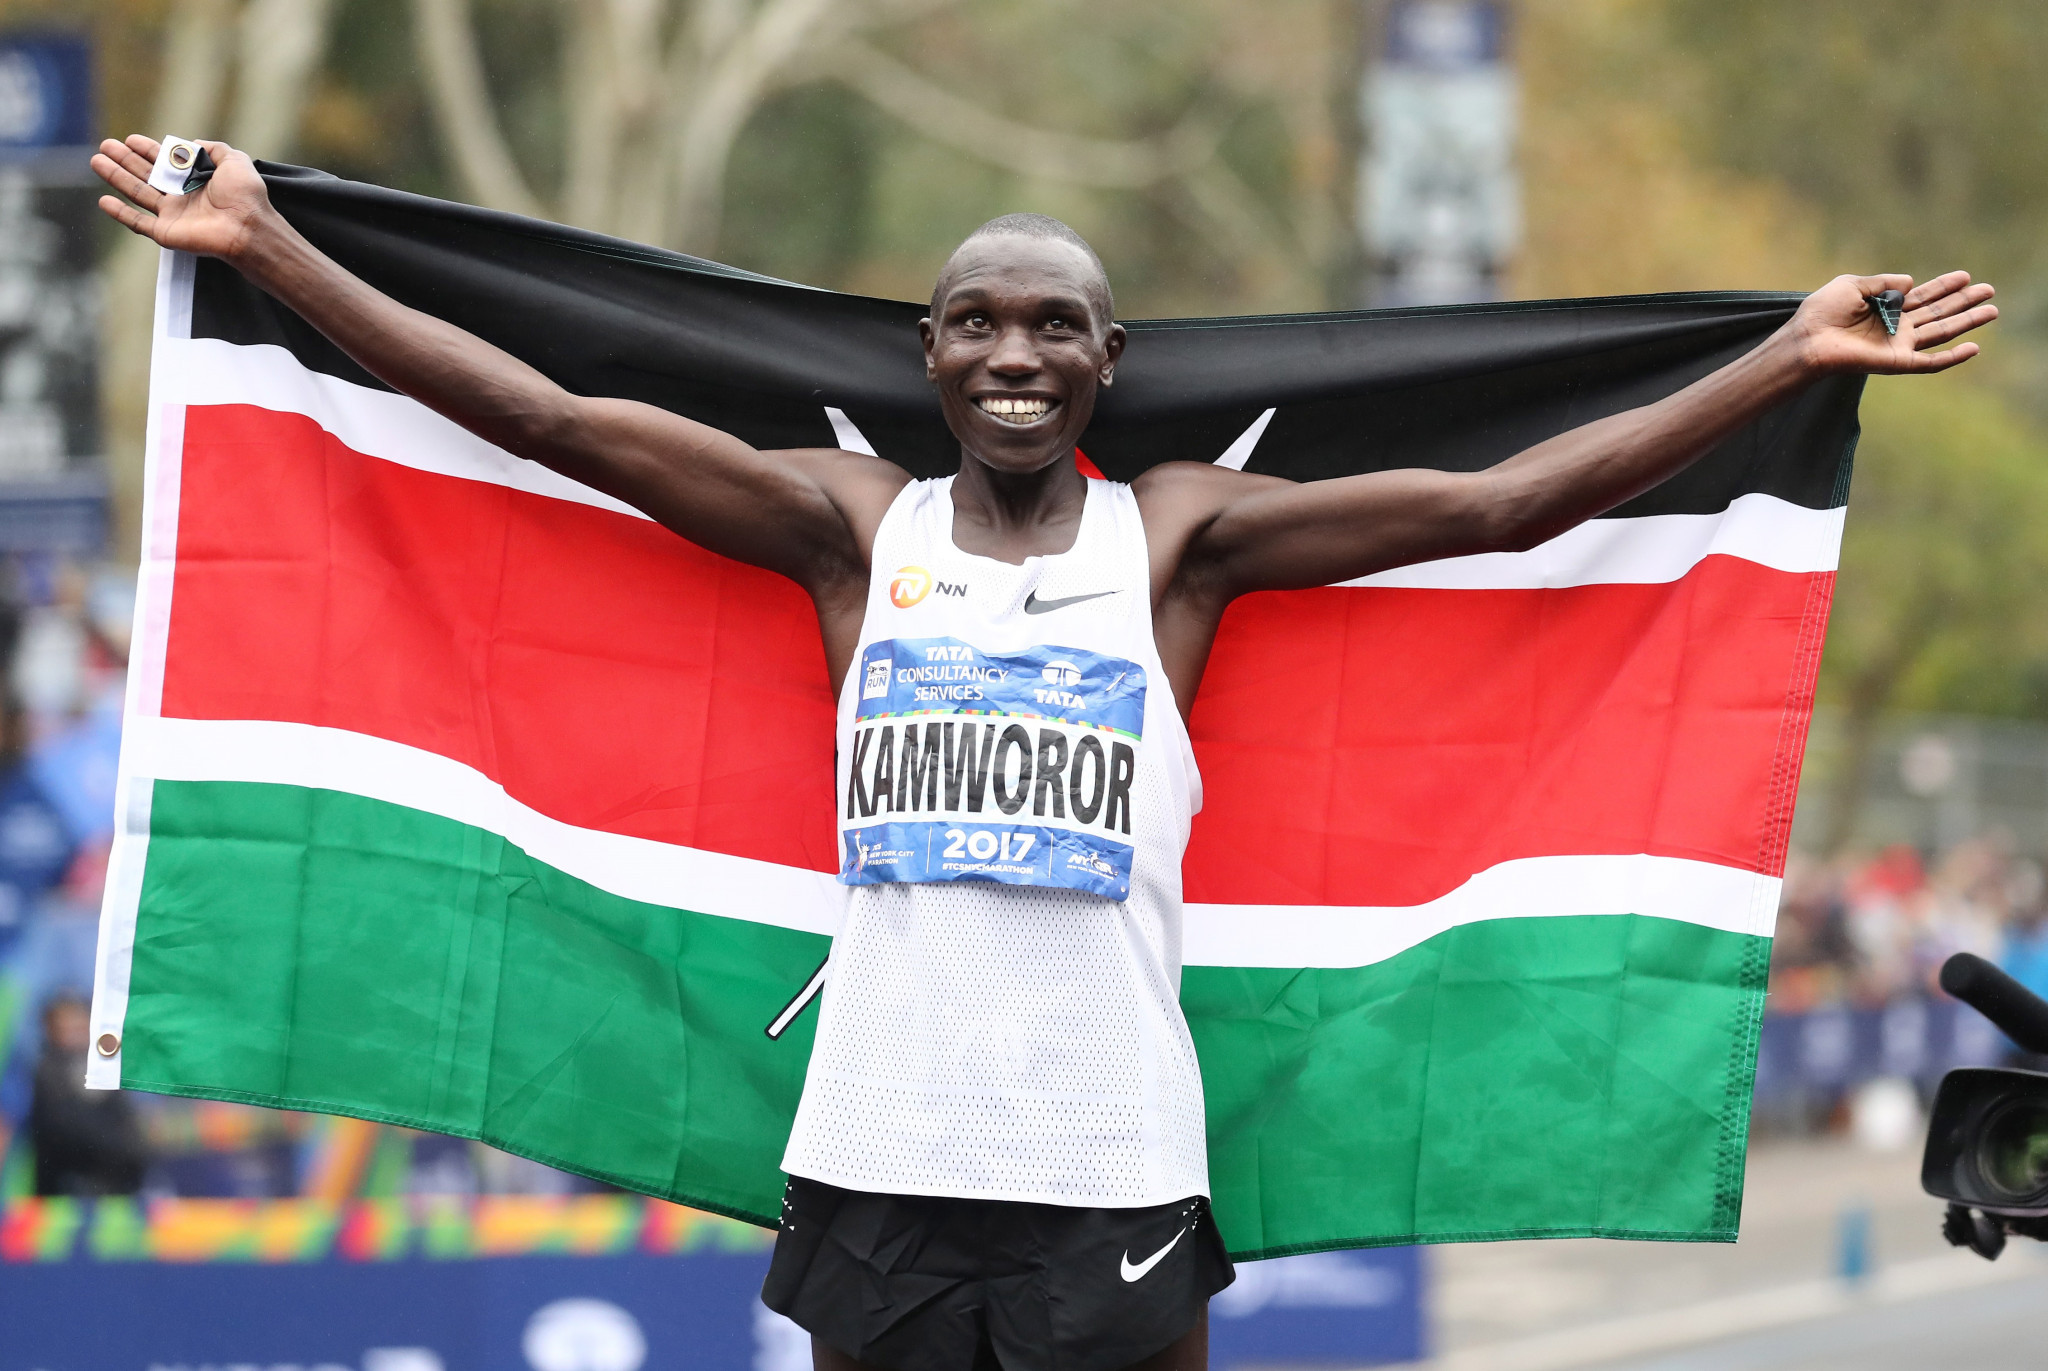 Kenya's Geoffrey Kamworor has ruled himself out of competing at the Gold Coast 2018 Commonwealth Games ©Getty Images